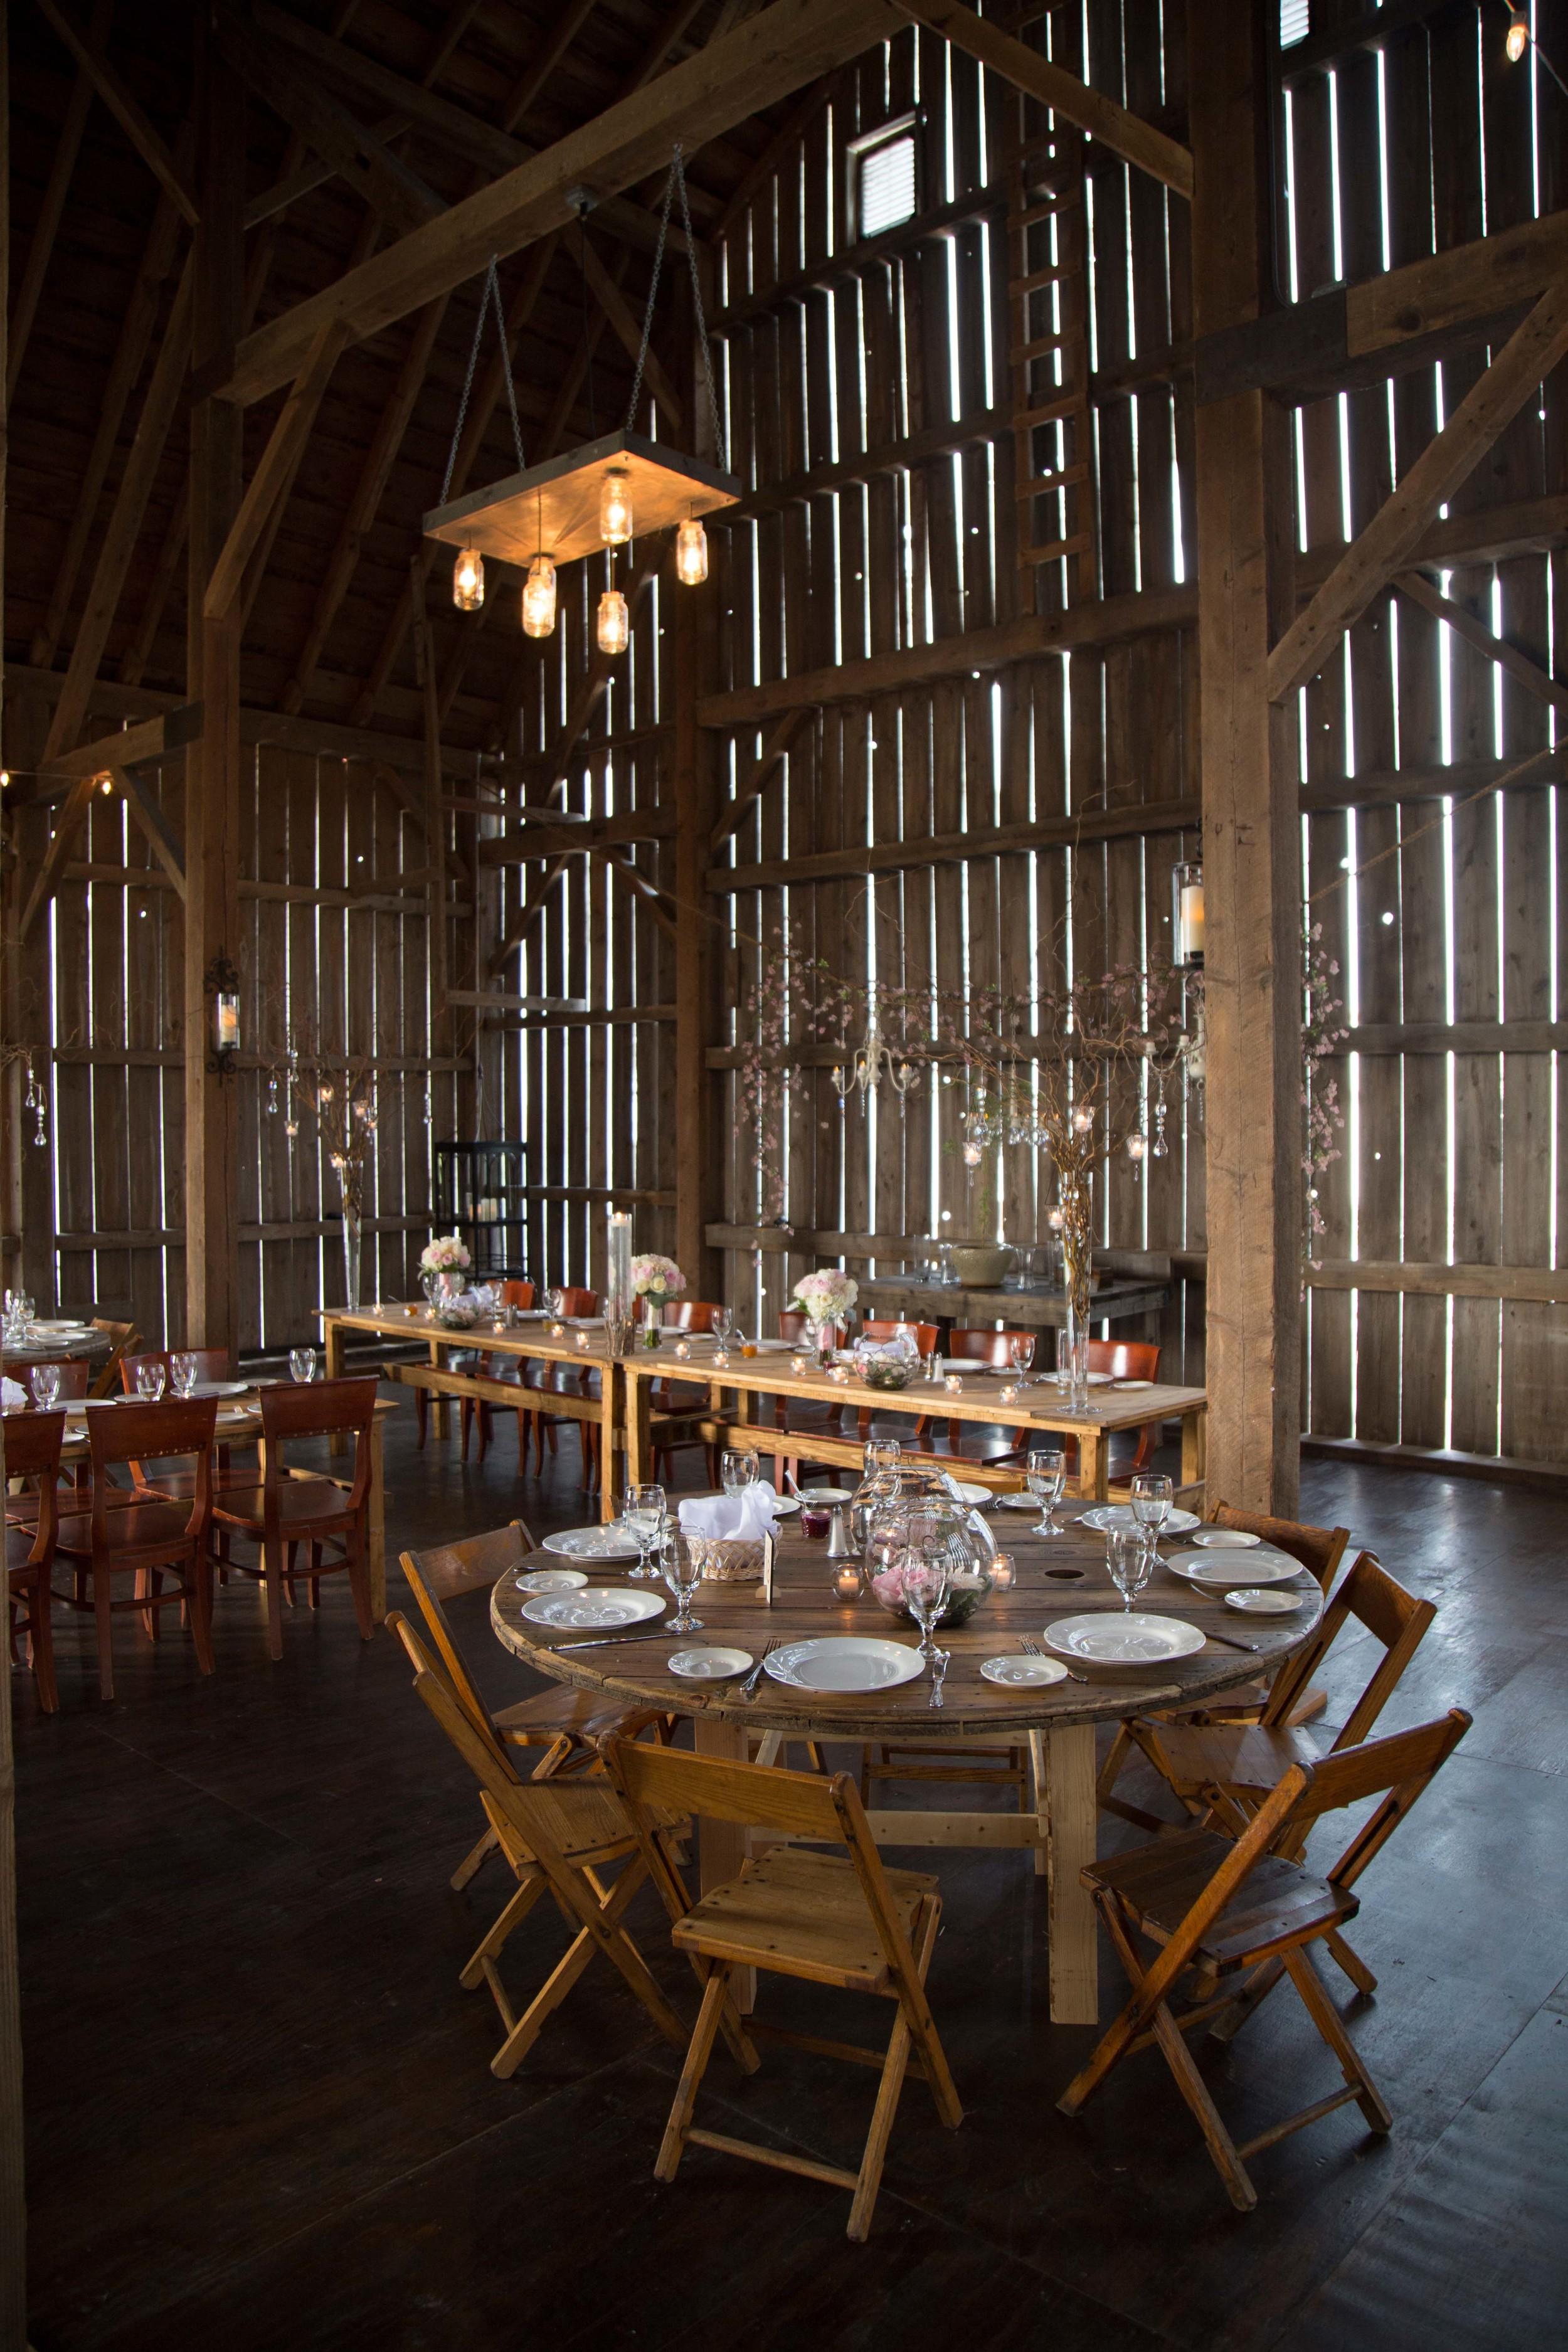 7-3-Barn_Dinner_Table_Decor_6726 2.jpg